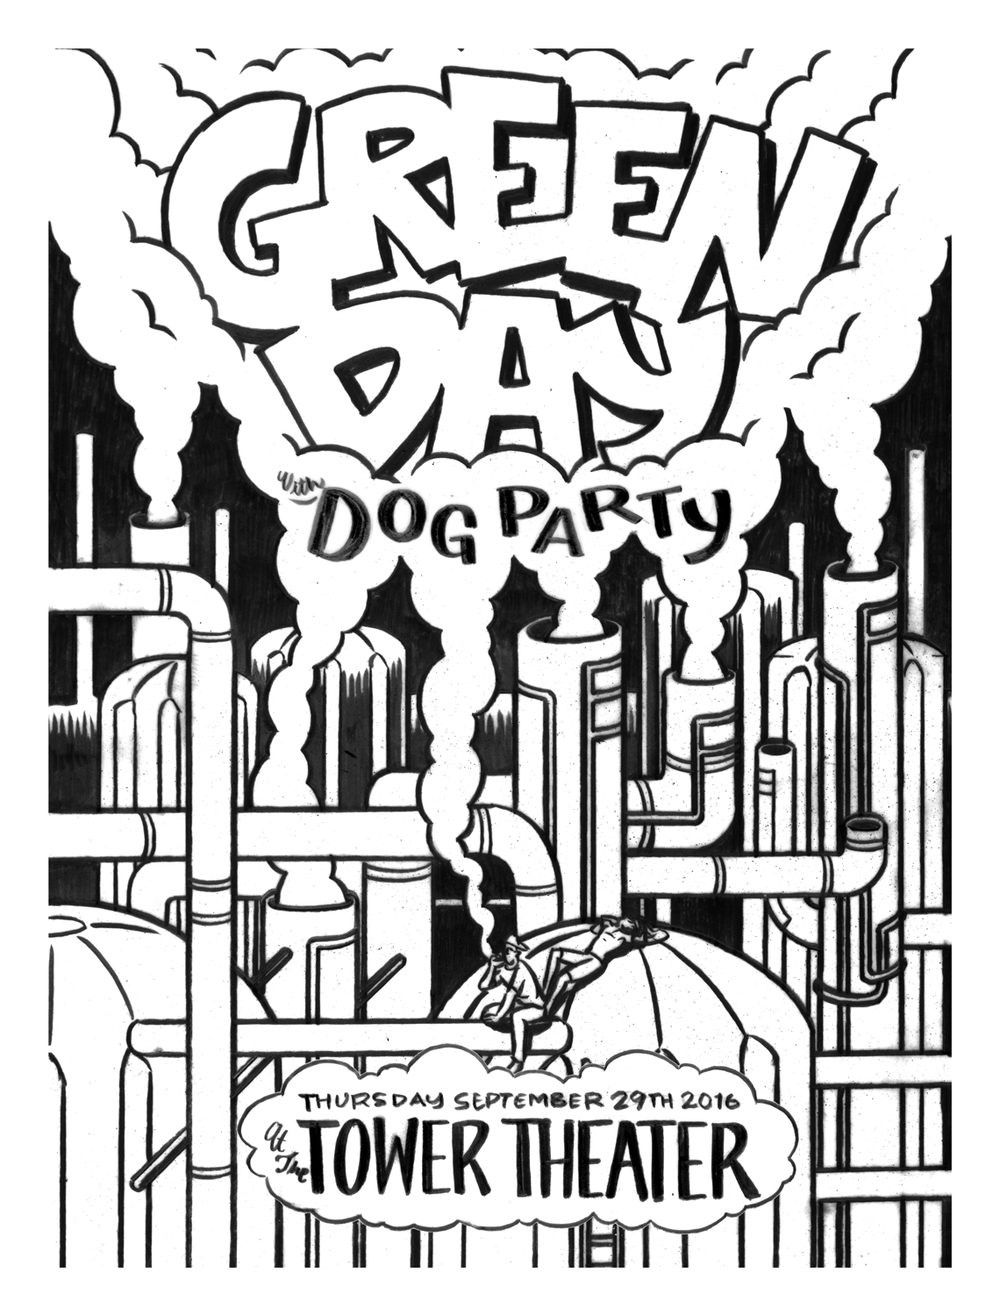 GREENDAY_Poster_Sketch_No1.png